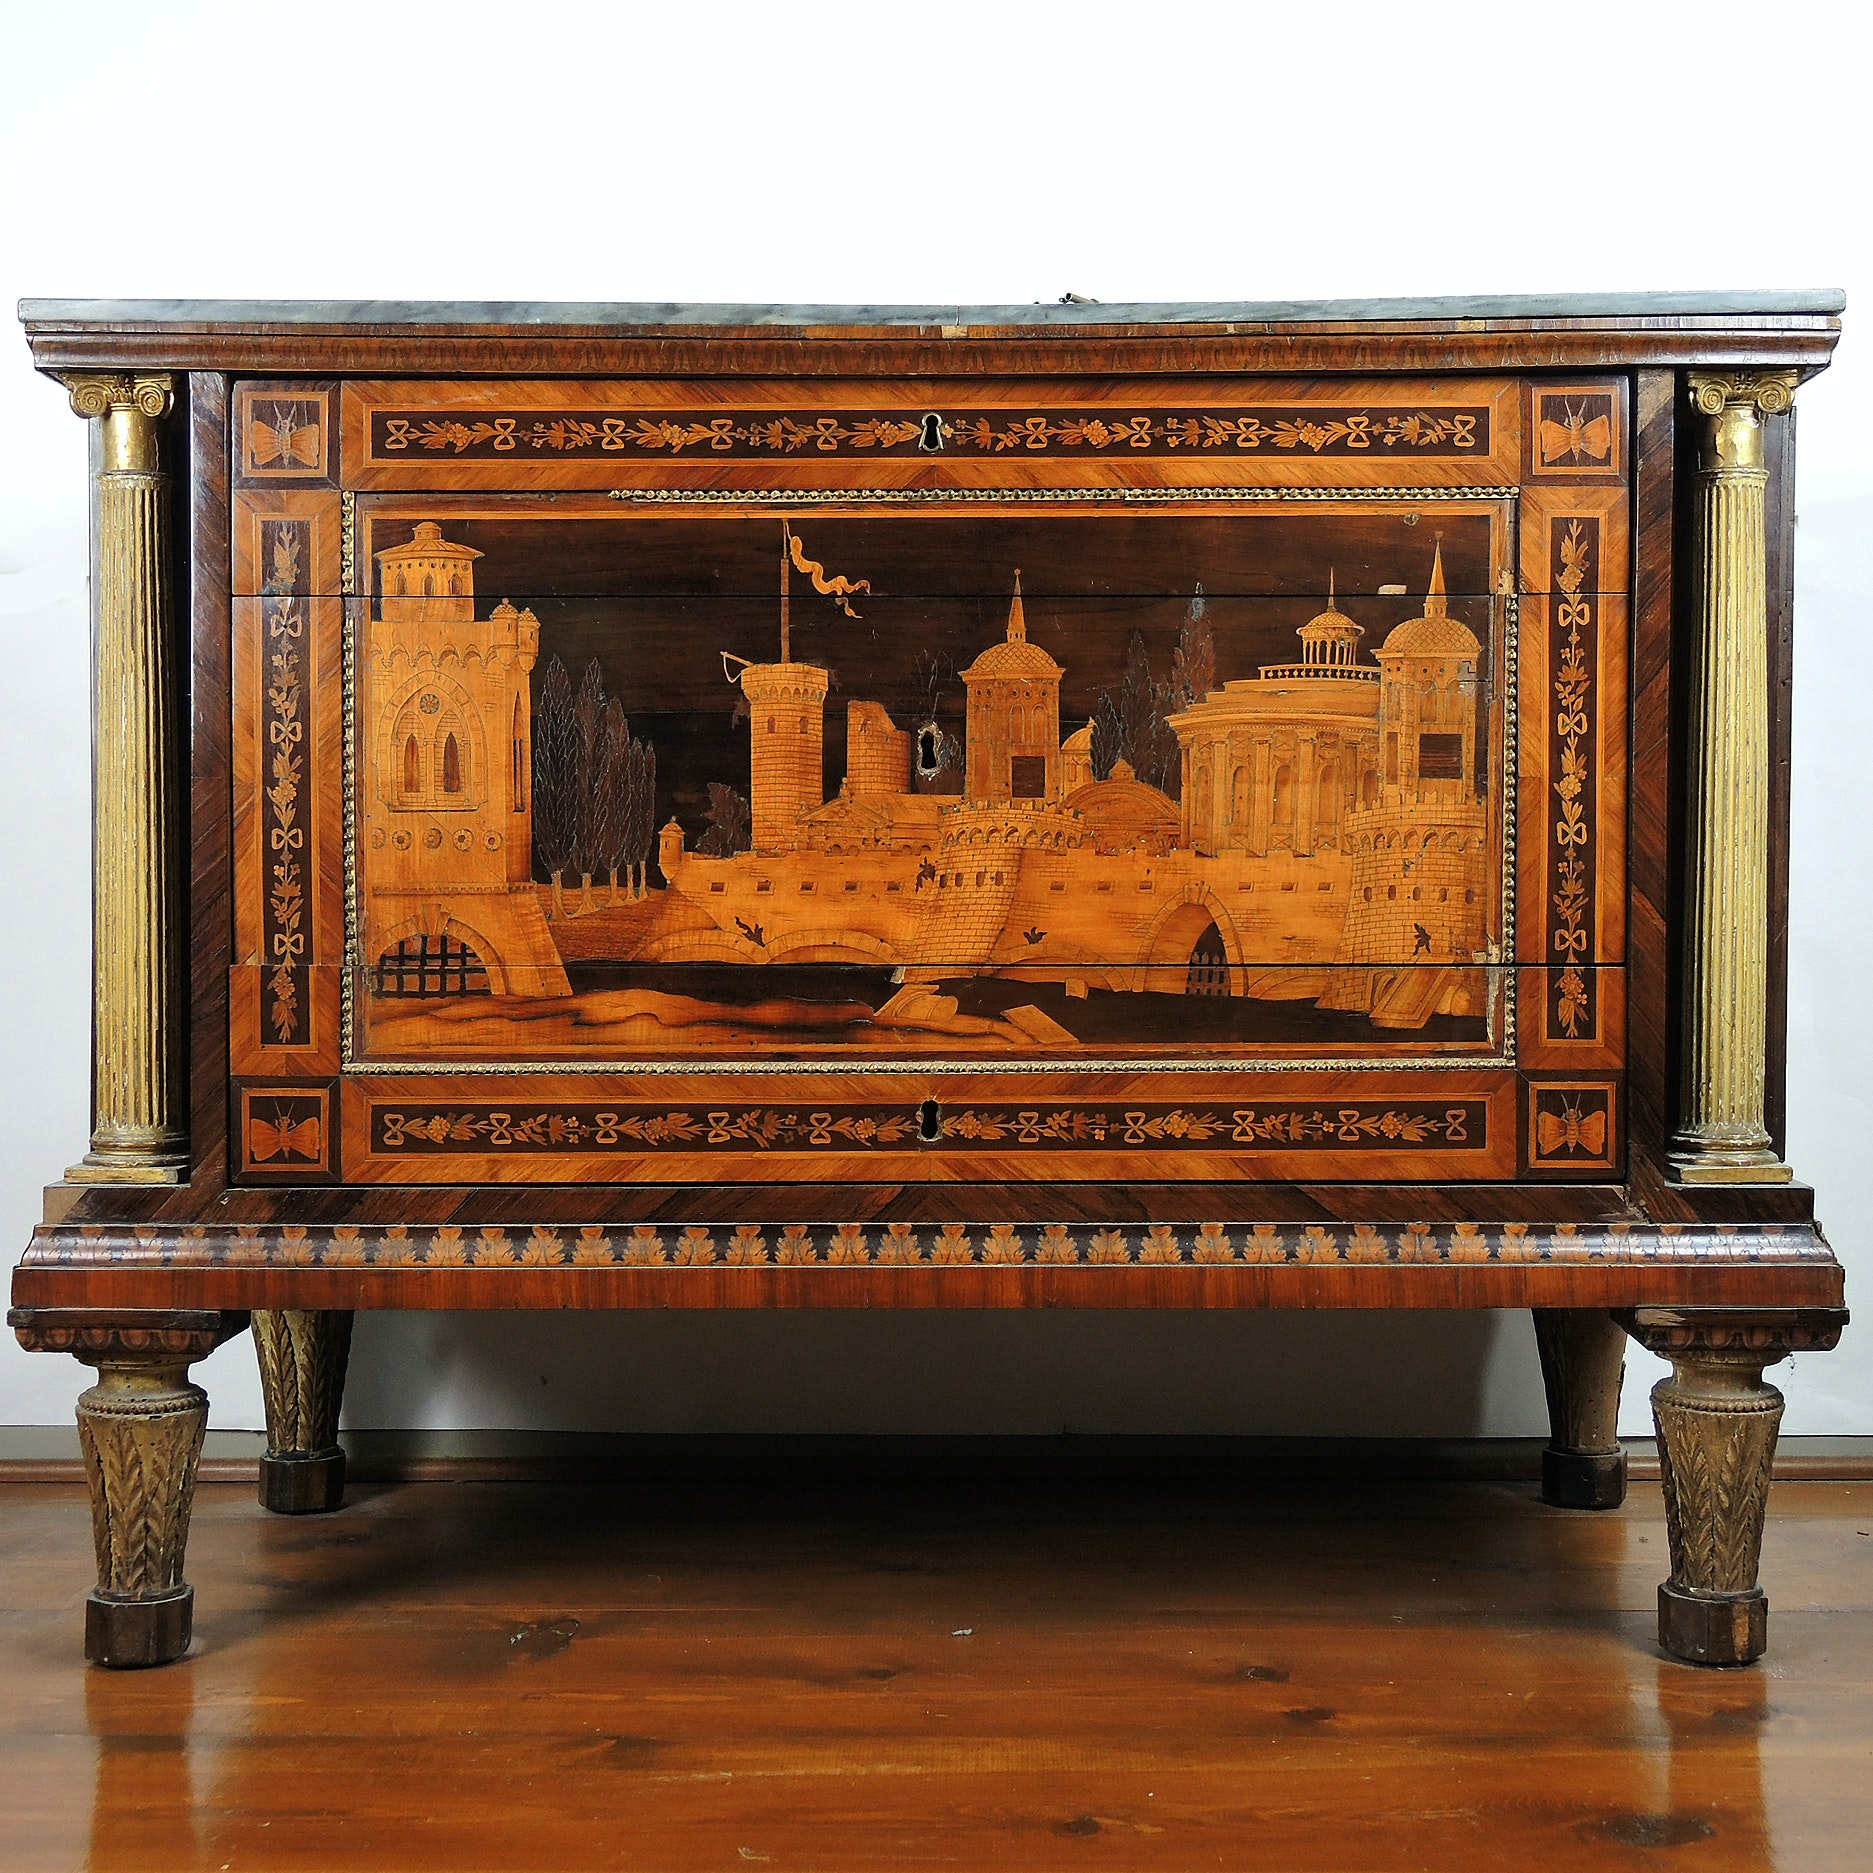 19th Century Italian Marquetry Inlaid Cabinet with Castle Scene